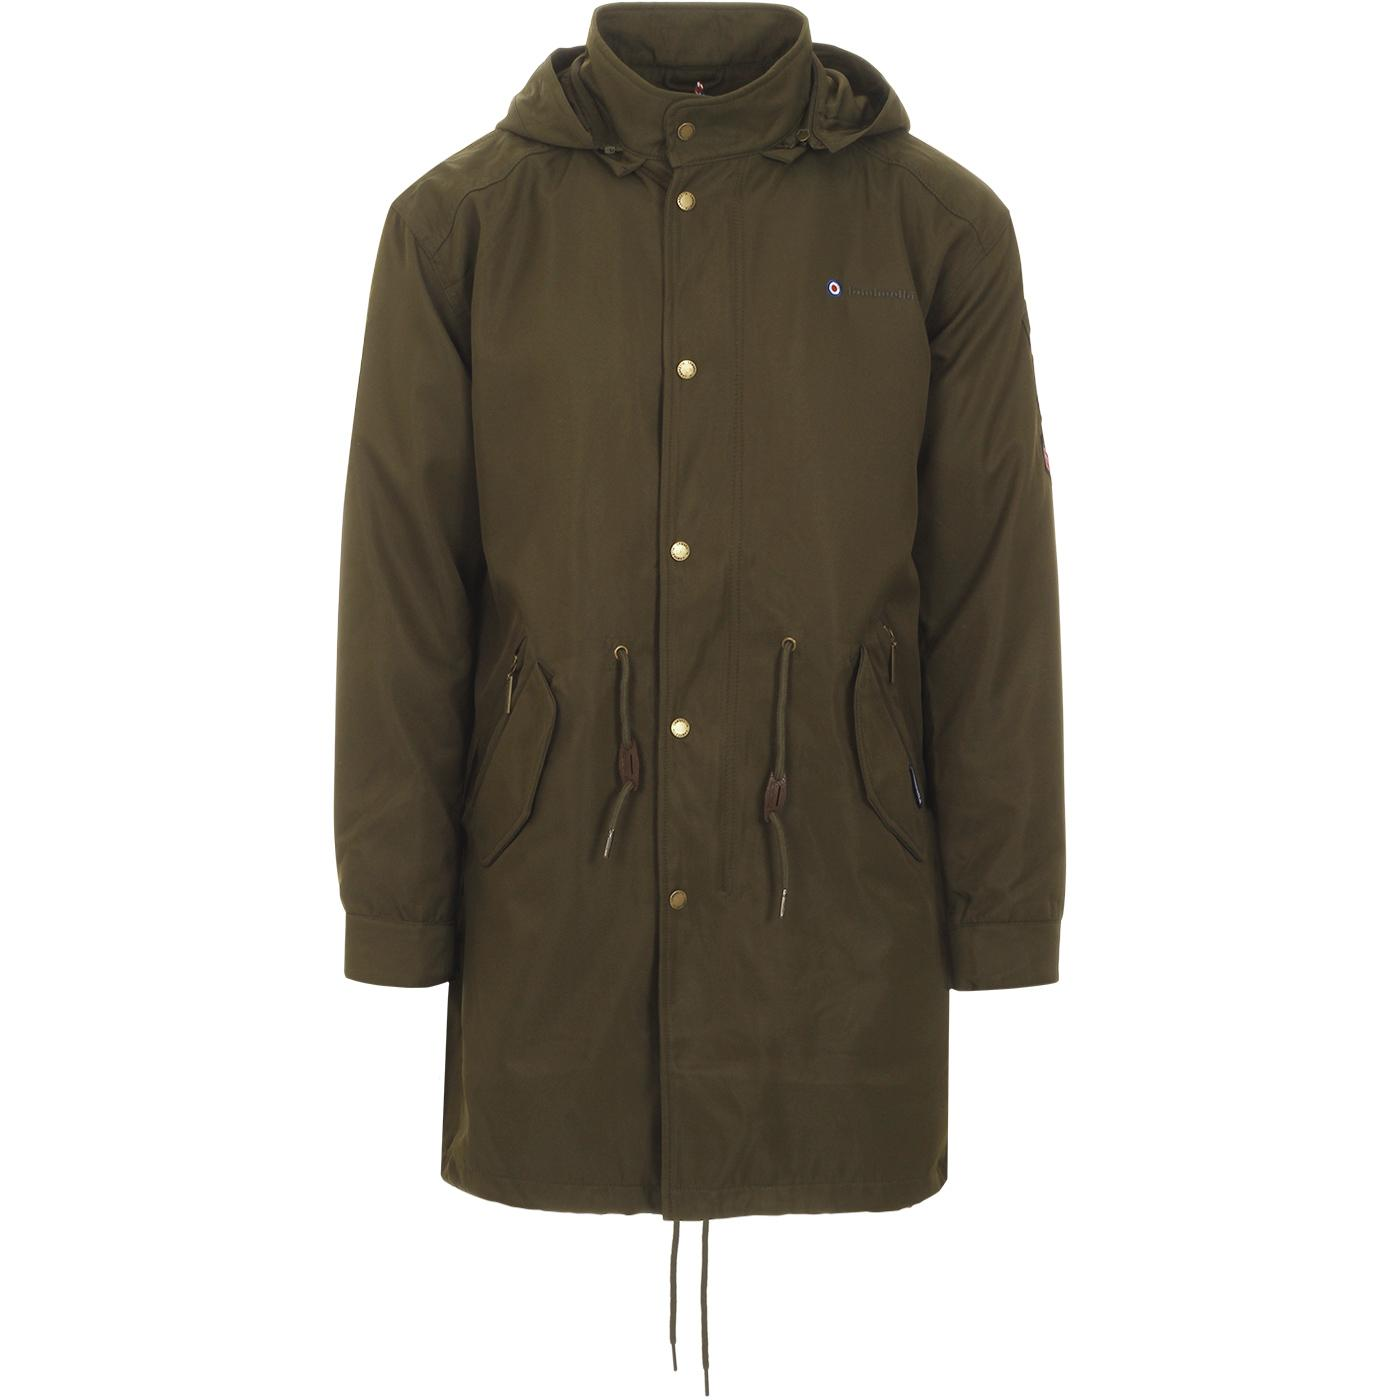 LAMBRETTA Retro Mod Patched Fishtail Parka (Khaki)